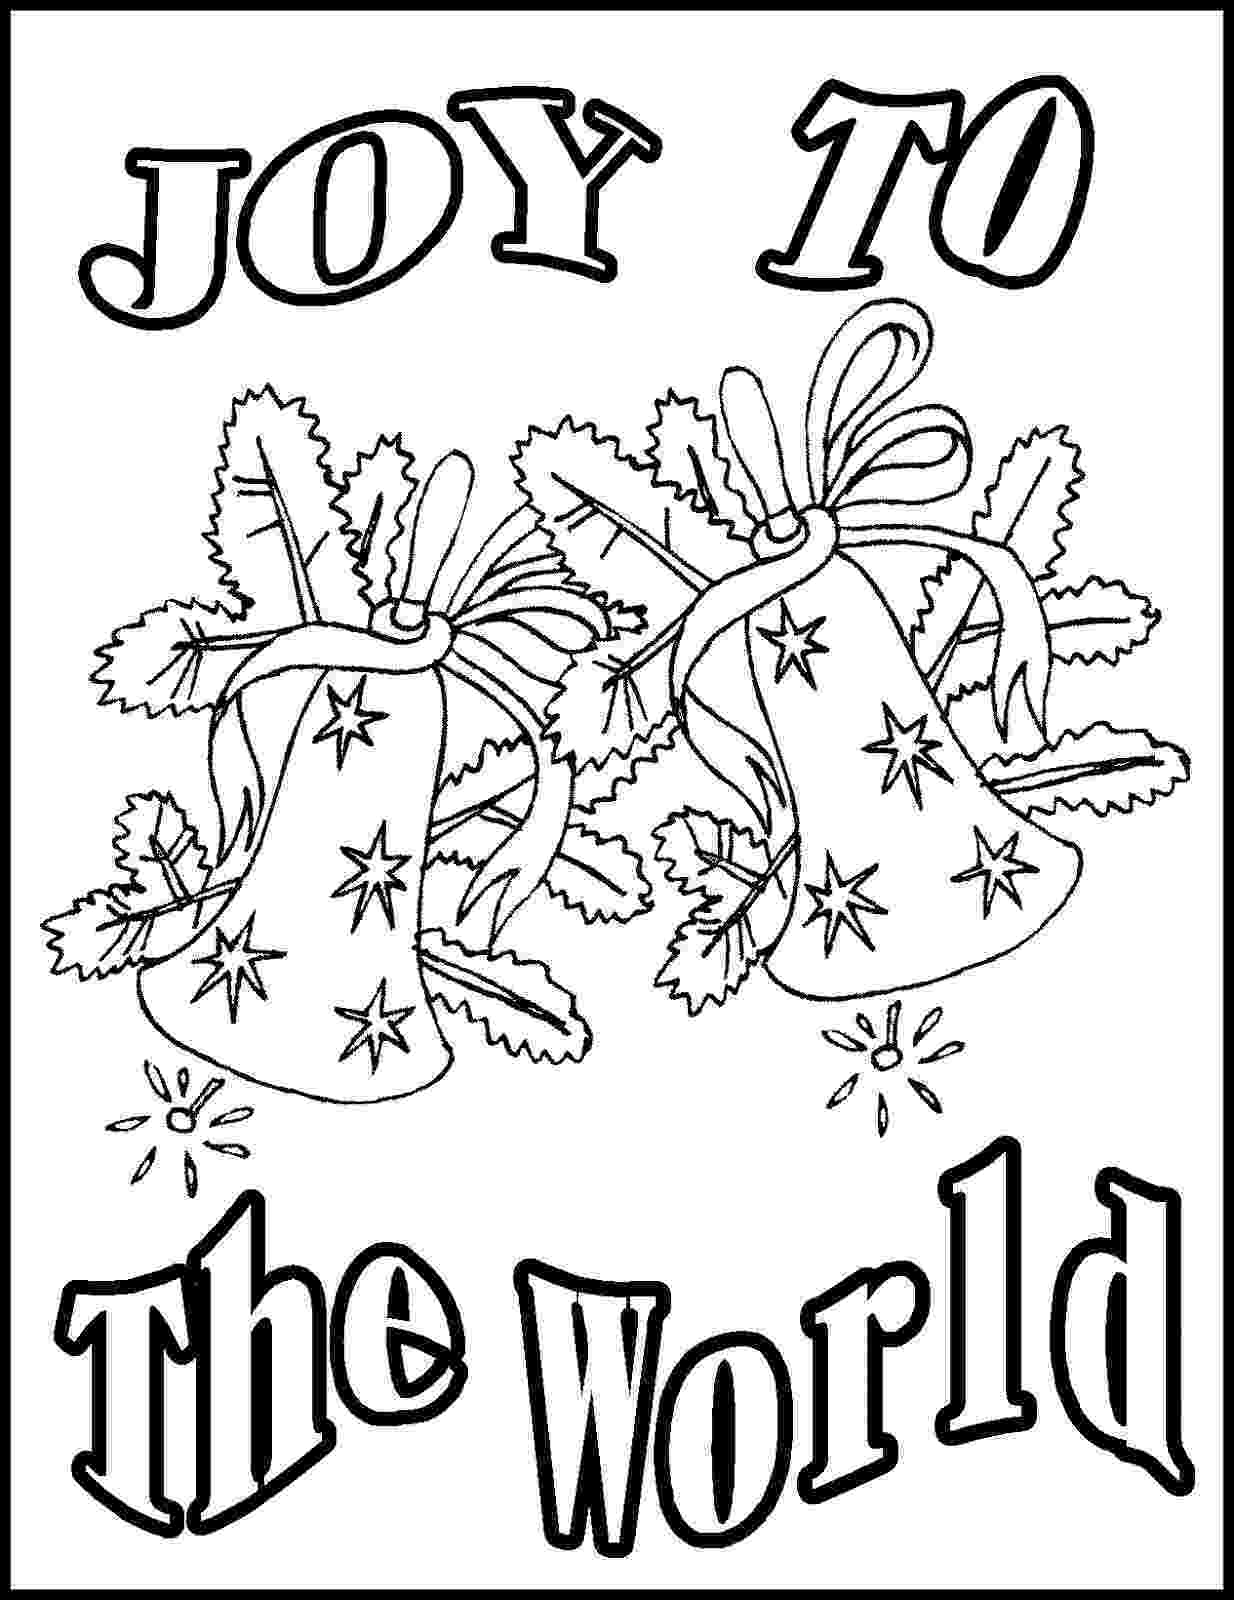 christian christmas coloring sheets 154 best christian christmas coloring pages images on christian coloring christmas sheets